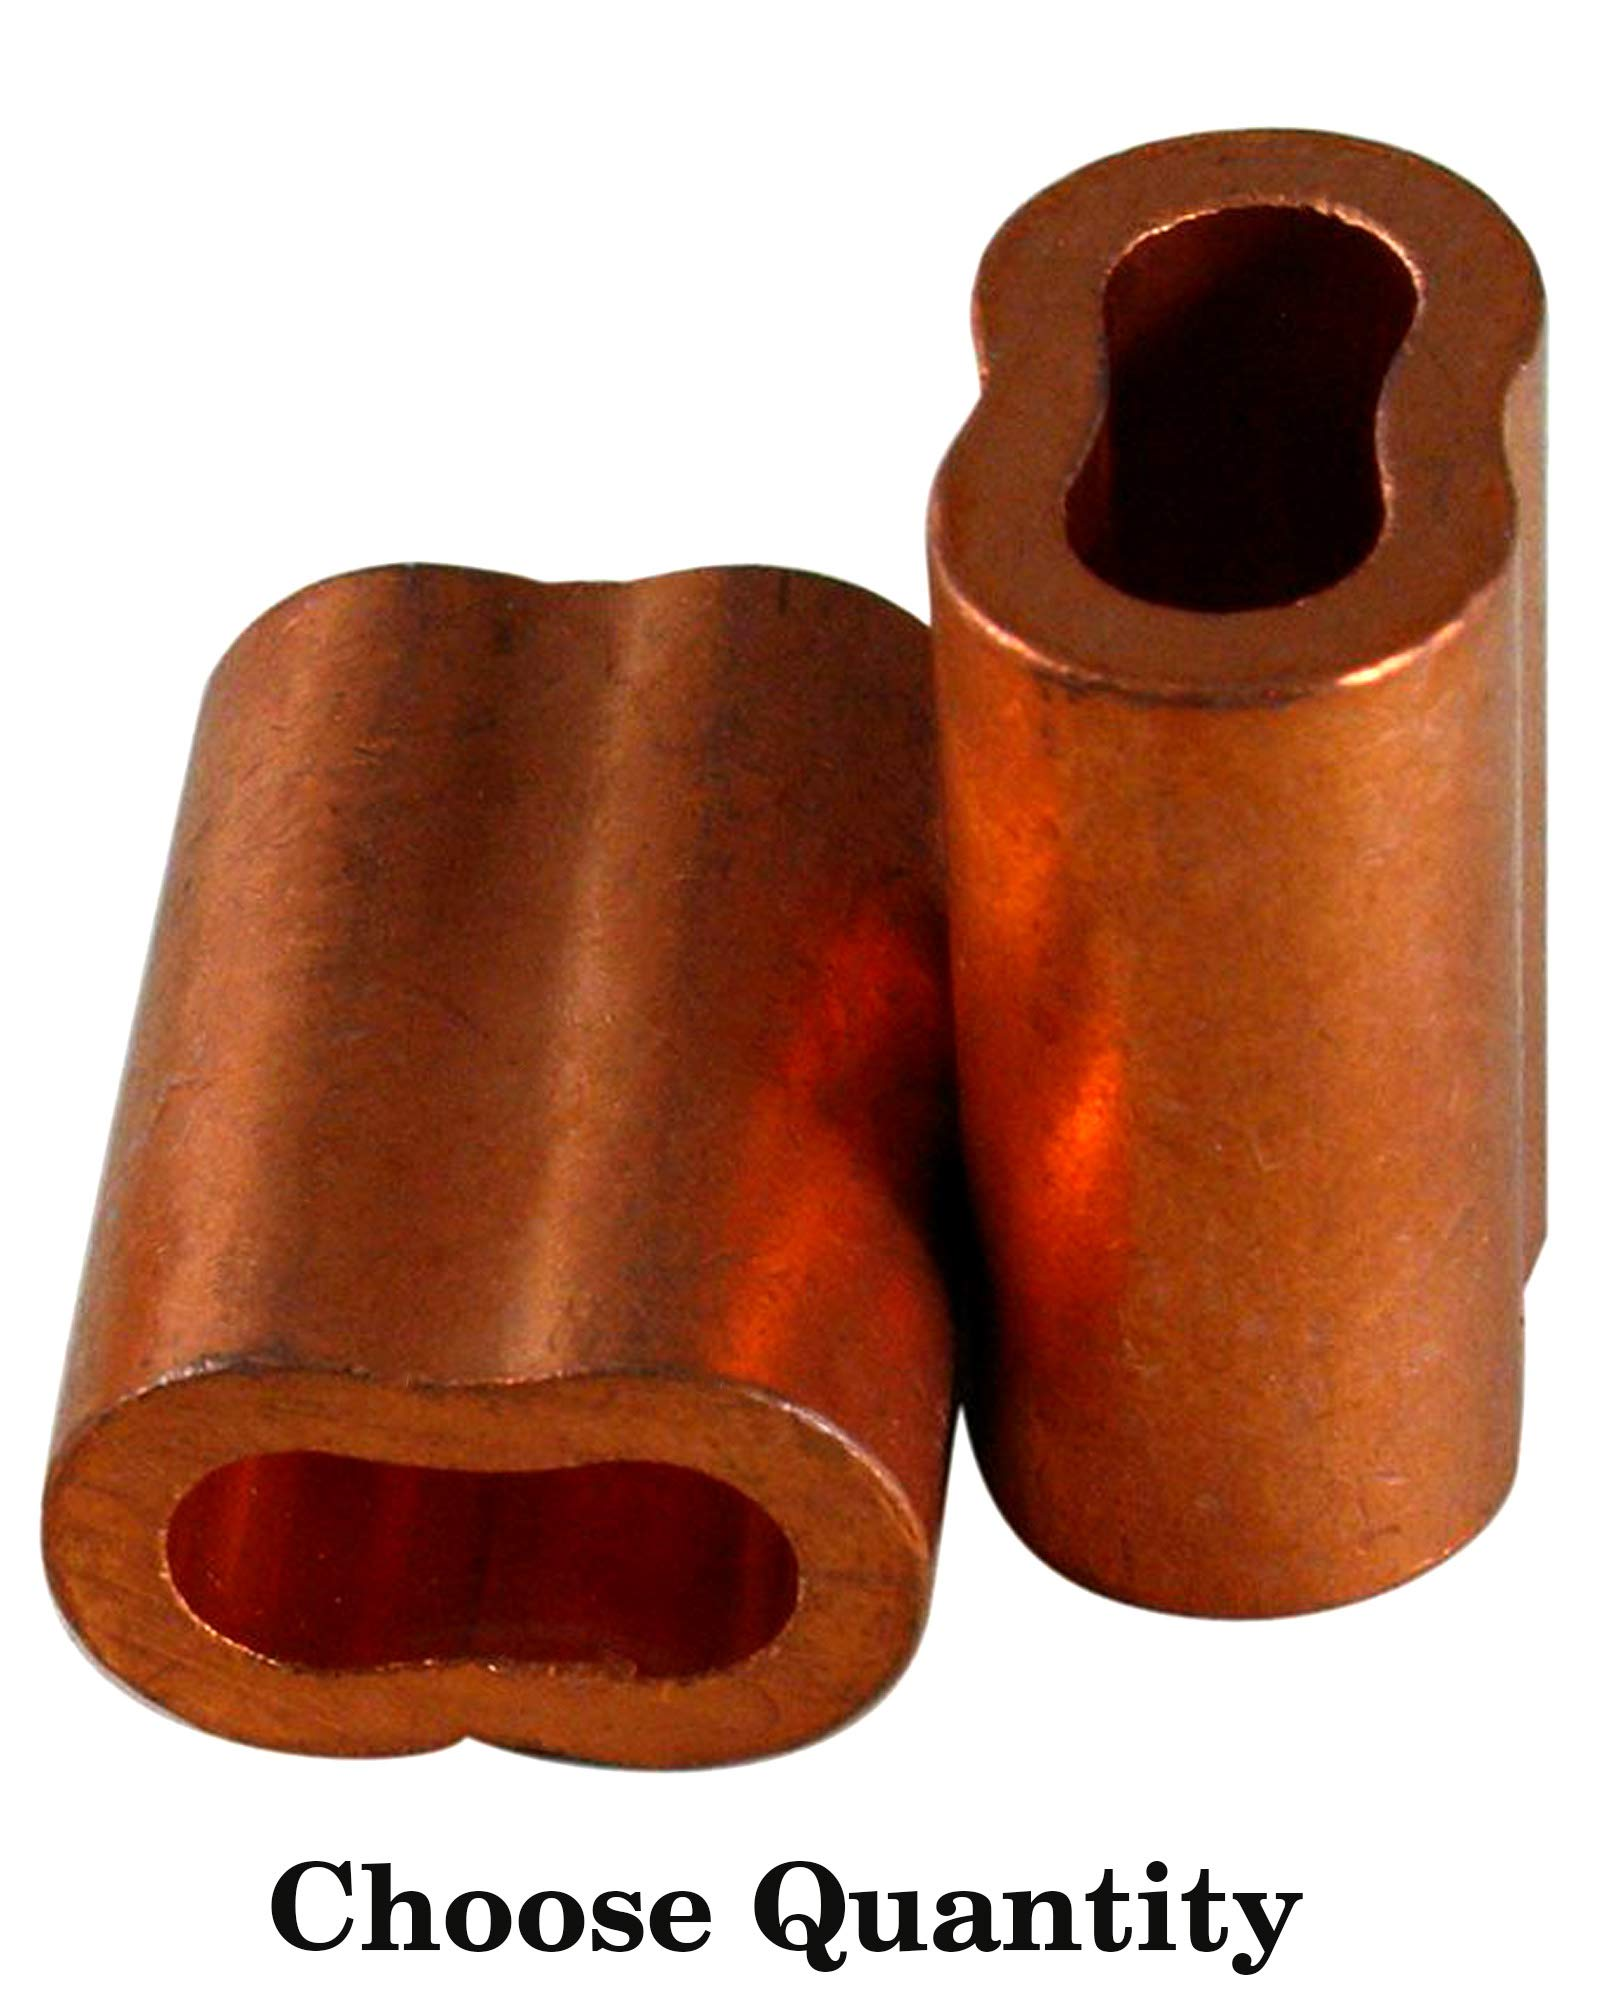 3/32″ Copper Swage Sleeves - Cable Sleeves Cable Crimp Sleeves Crimping Loop Sleeve for 3/32'' Diameter Wire Rope and Cable Wire Rope Crimp Sleeves Loop Sleeve Cable Crimp (100)